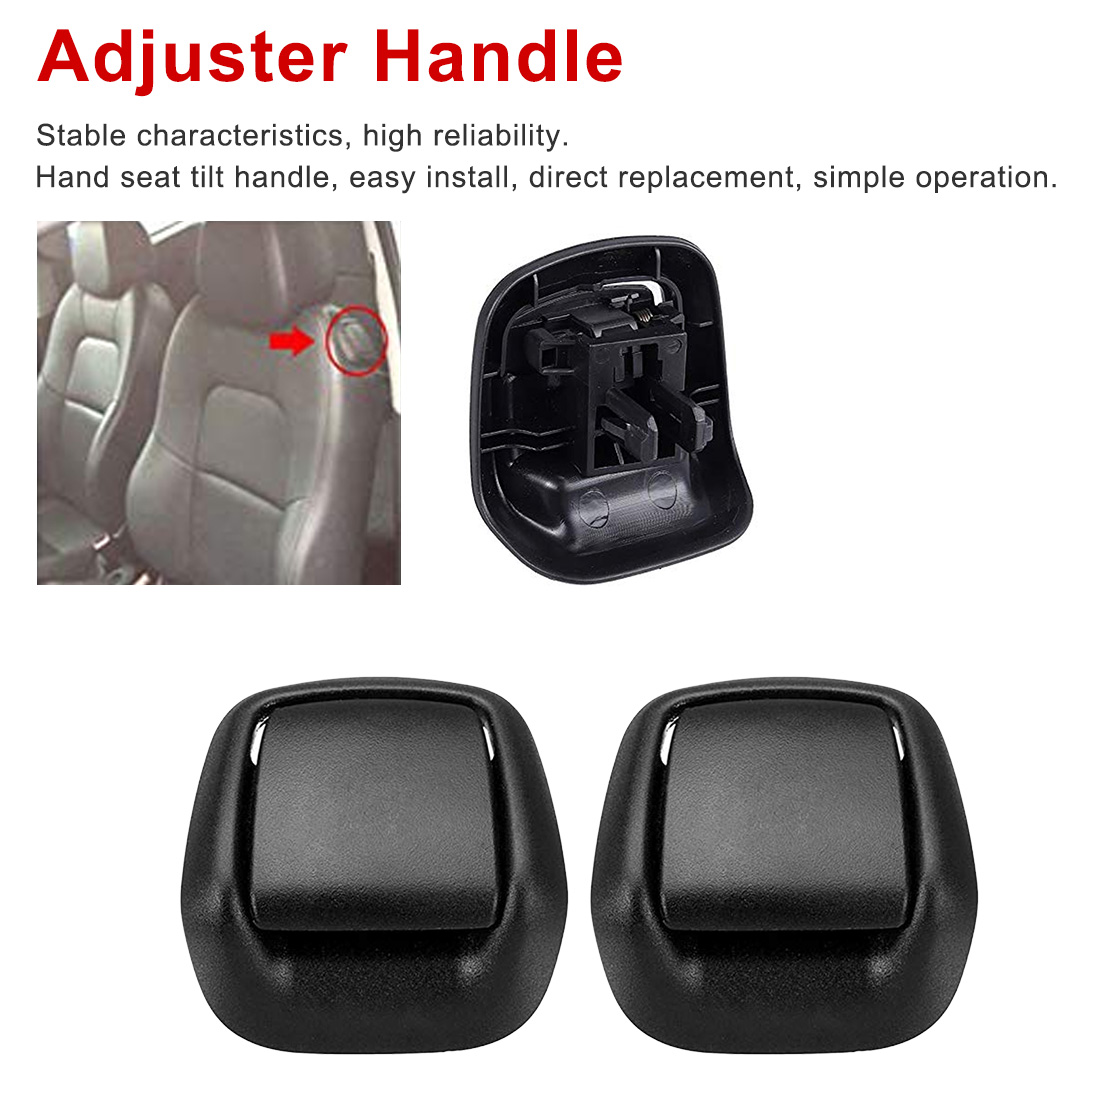 1Pair Plastic Front Left/Right Hand Seat Tilt Handle Seat Adjuster Handle For Universal AUTO Car Seat Accessories